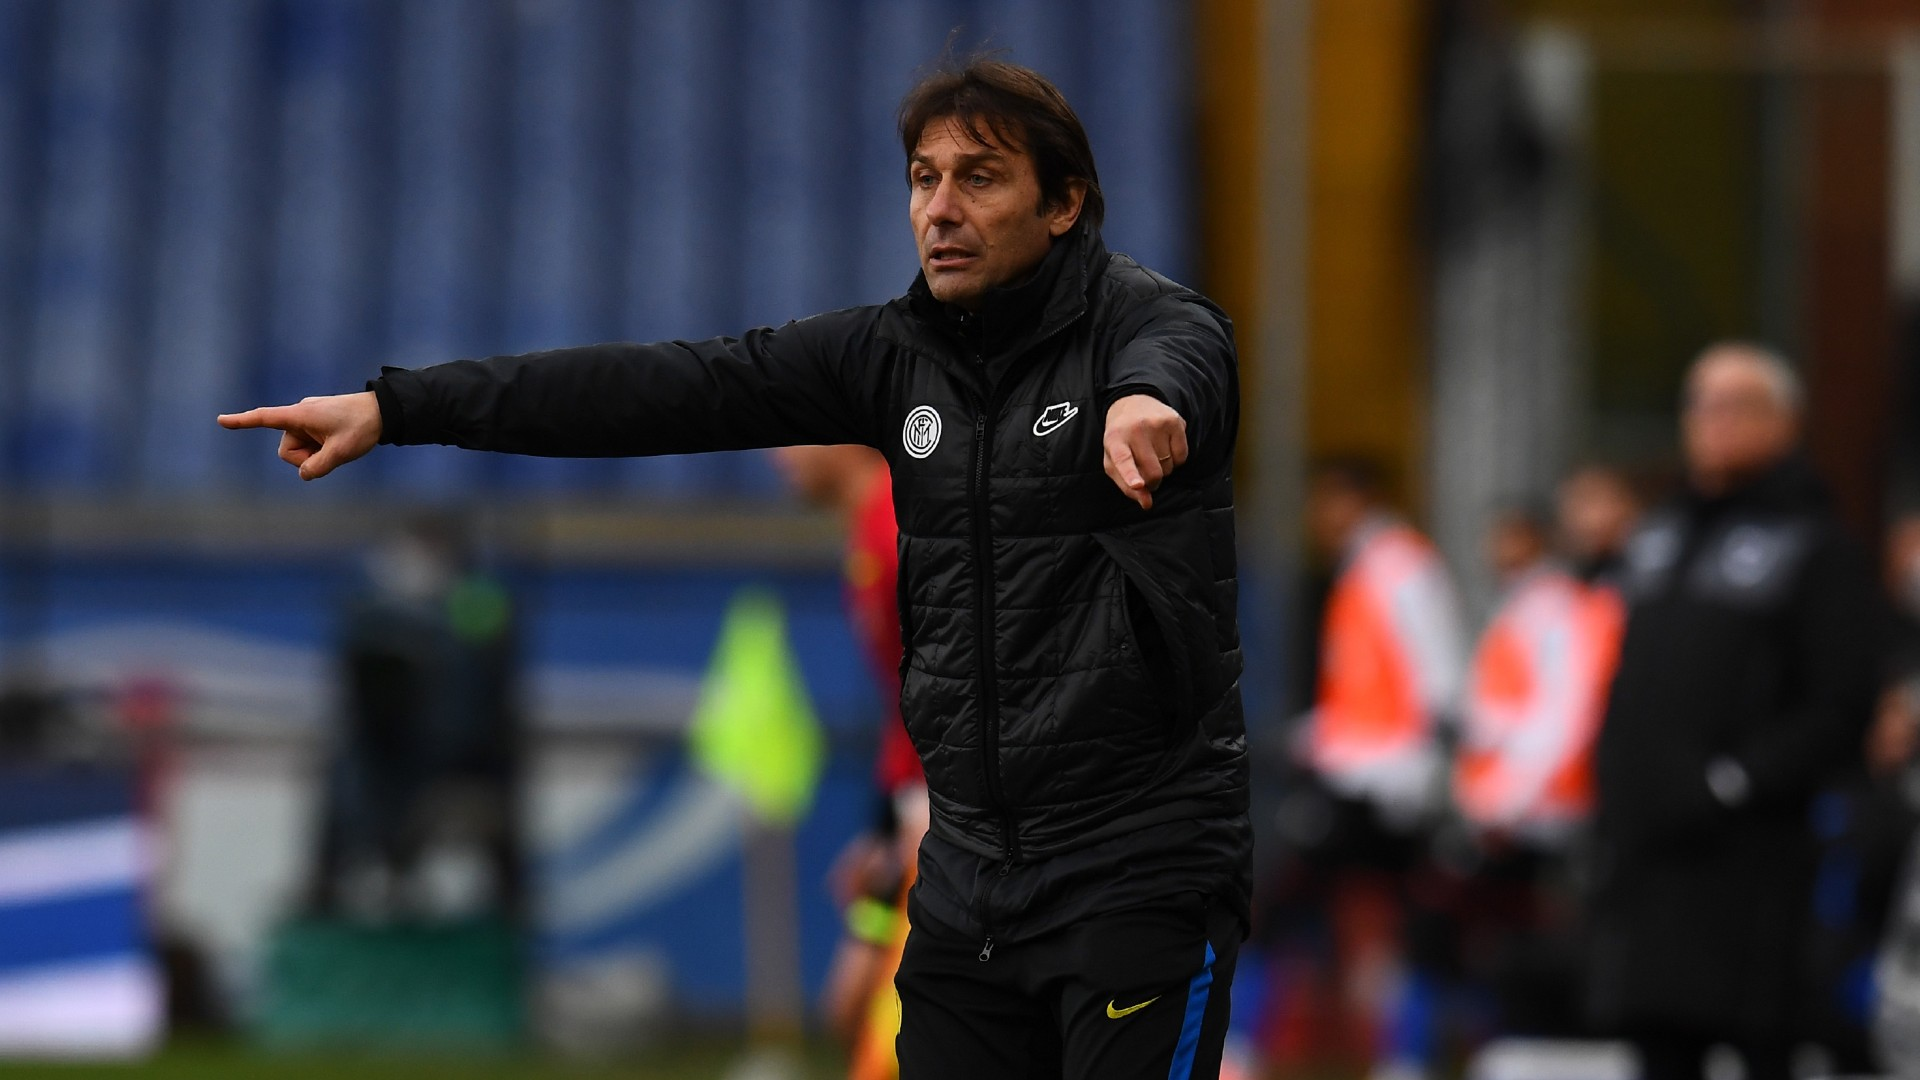 Inter deserved more - Conte bemoans Sampdoria slip-up in Scudetto race